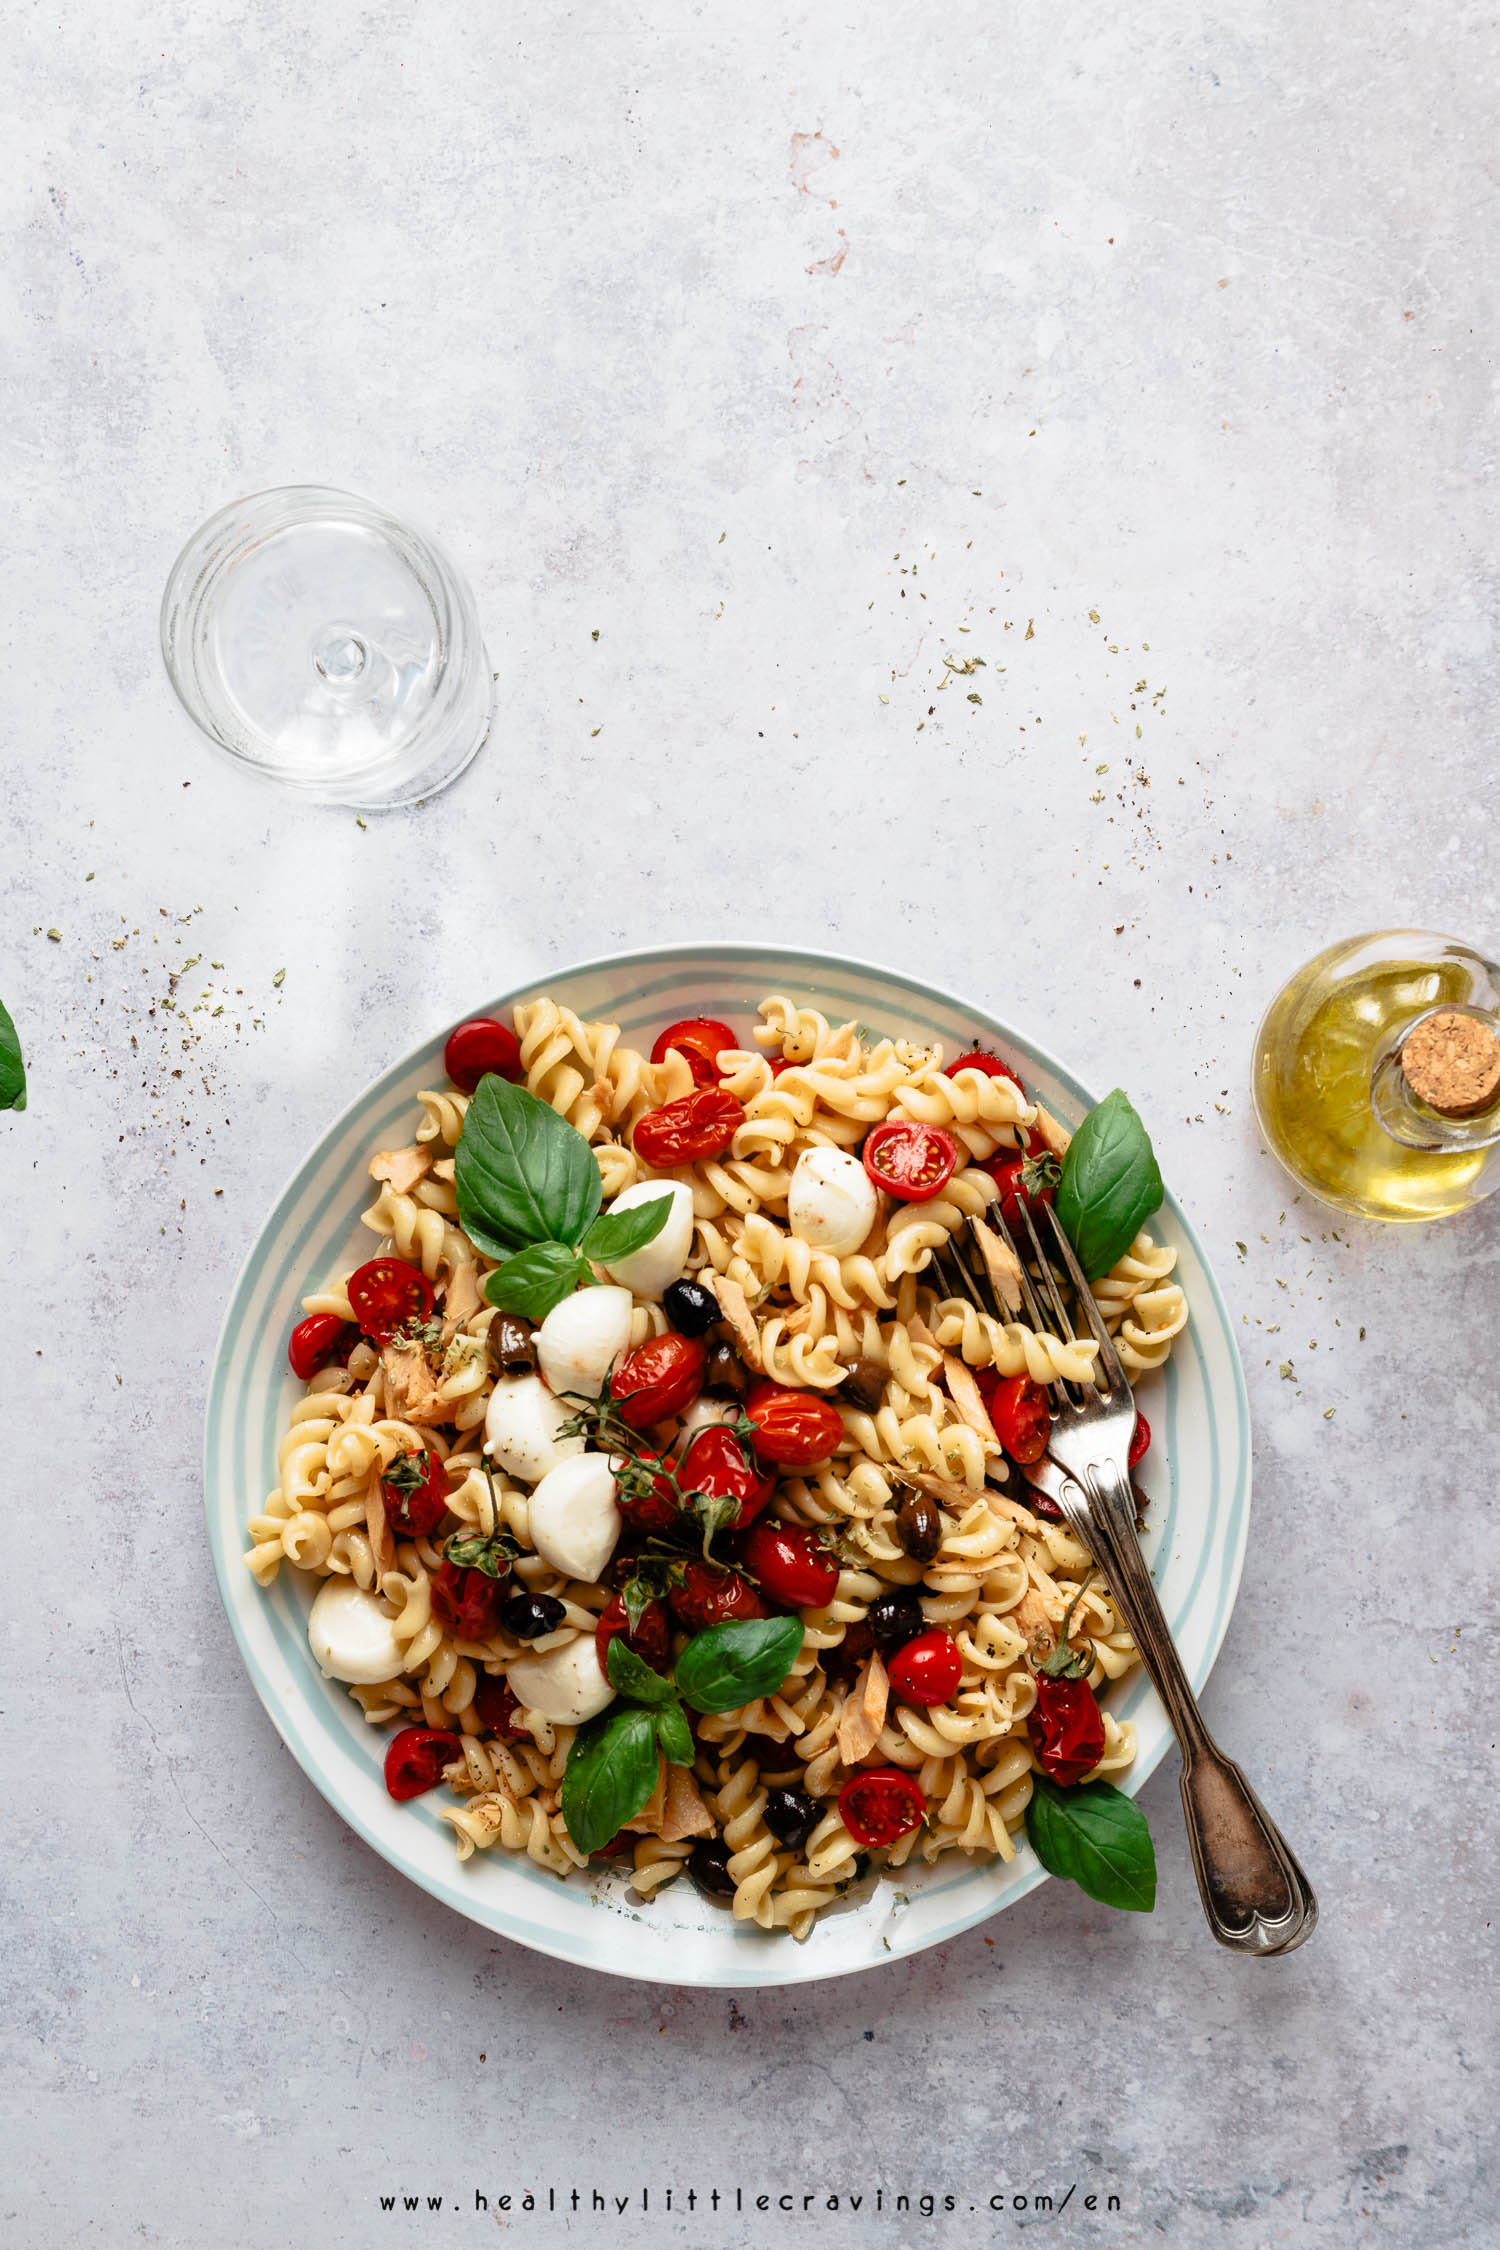 Tips to make the perfect pasta salad